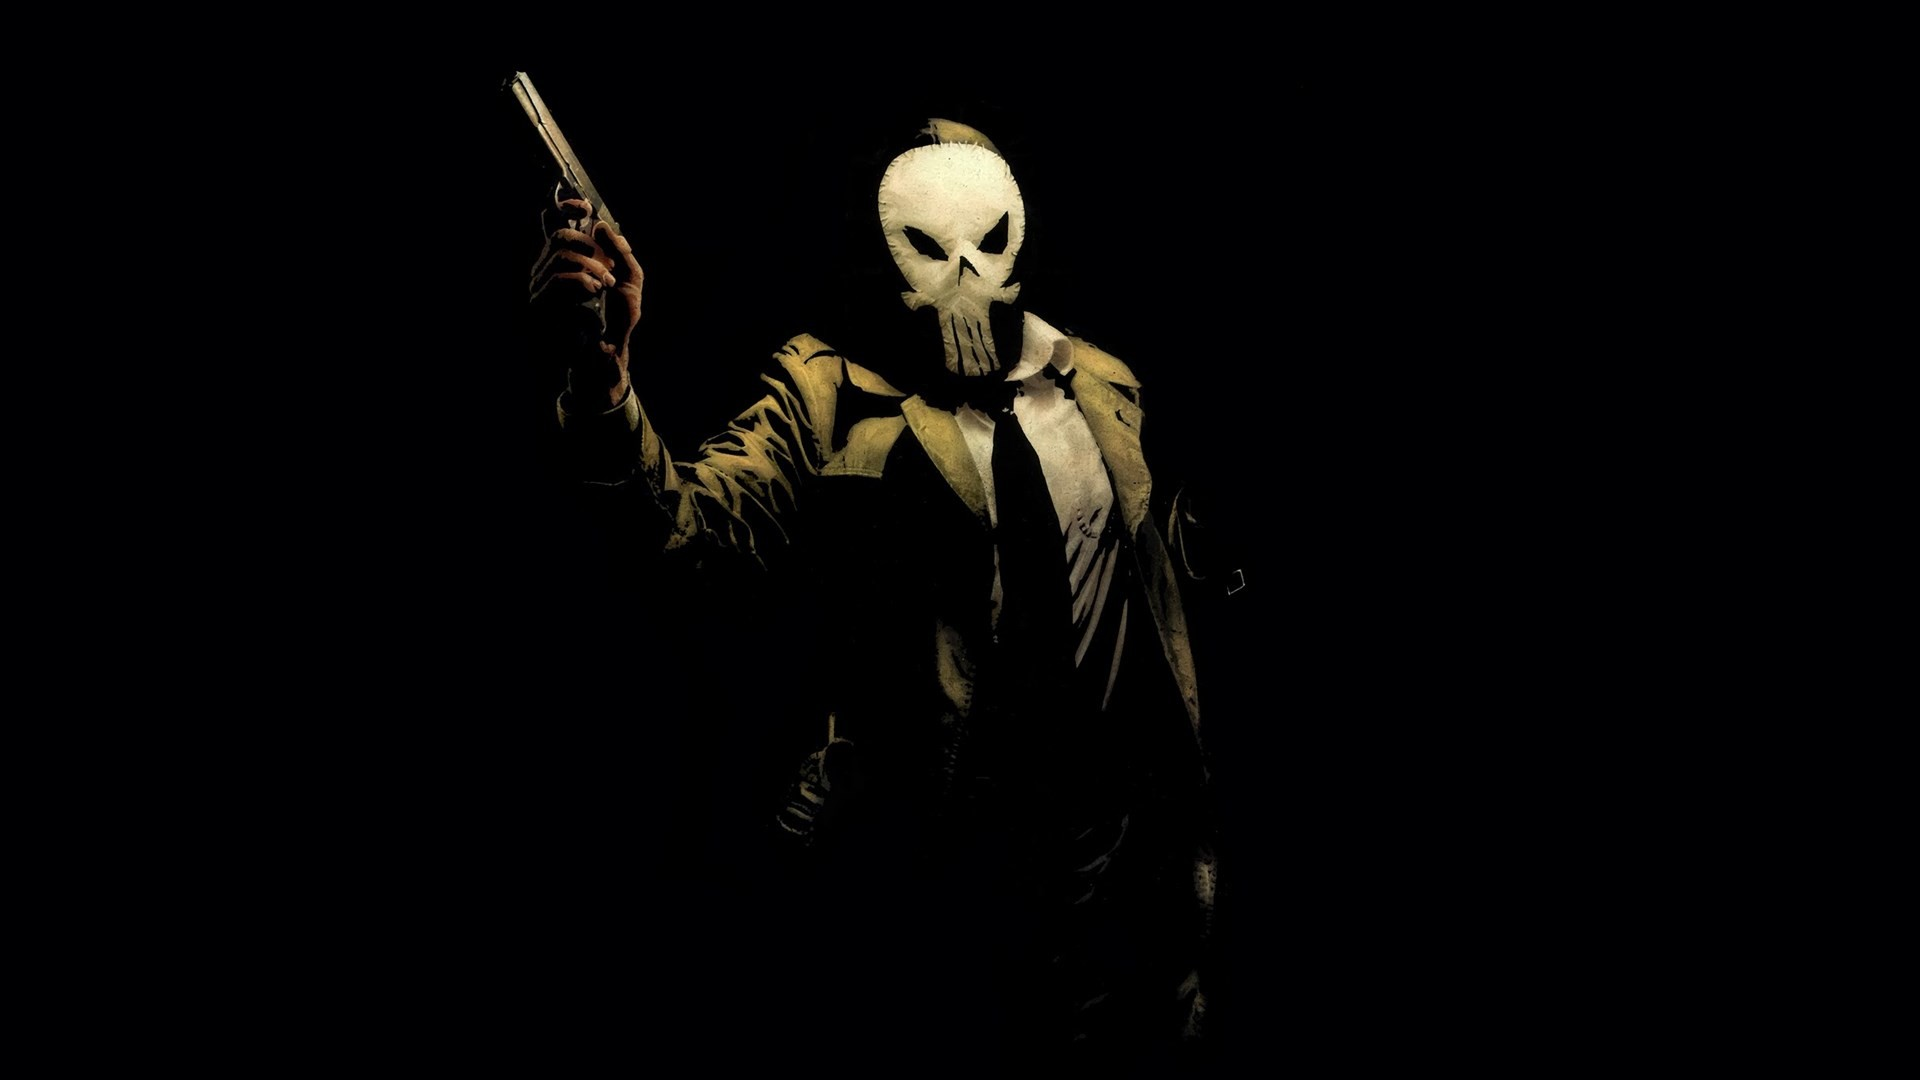 The Punisher Wallpapers Desktop K HD Backgrounds Fungyung | HD Wallpapers |  Pinterest | Punisher and Wallpaper